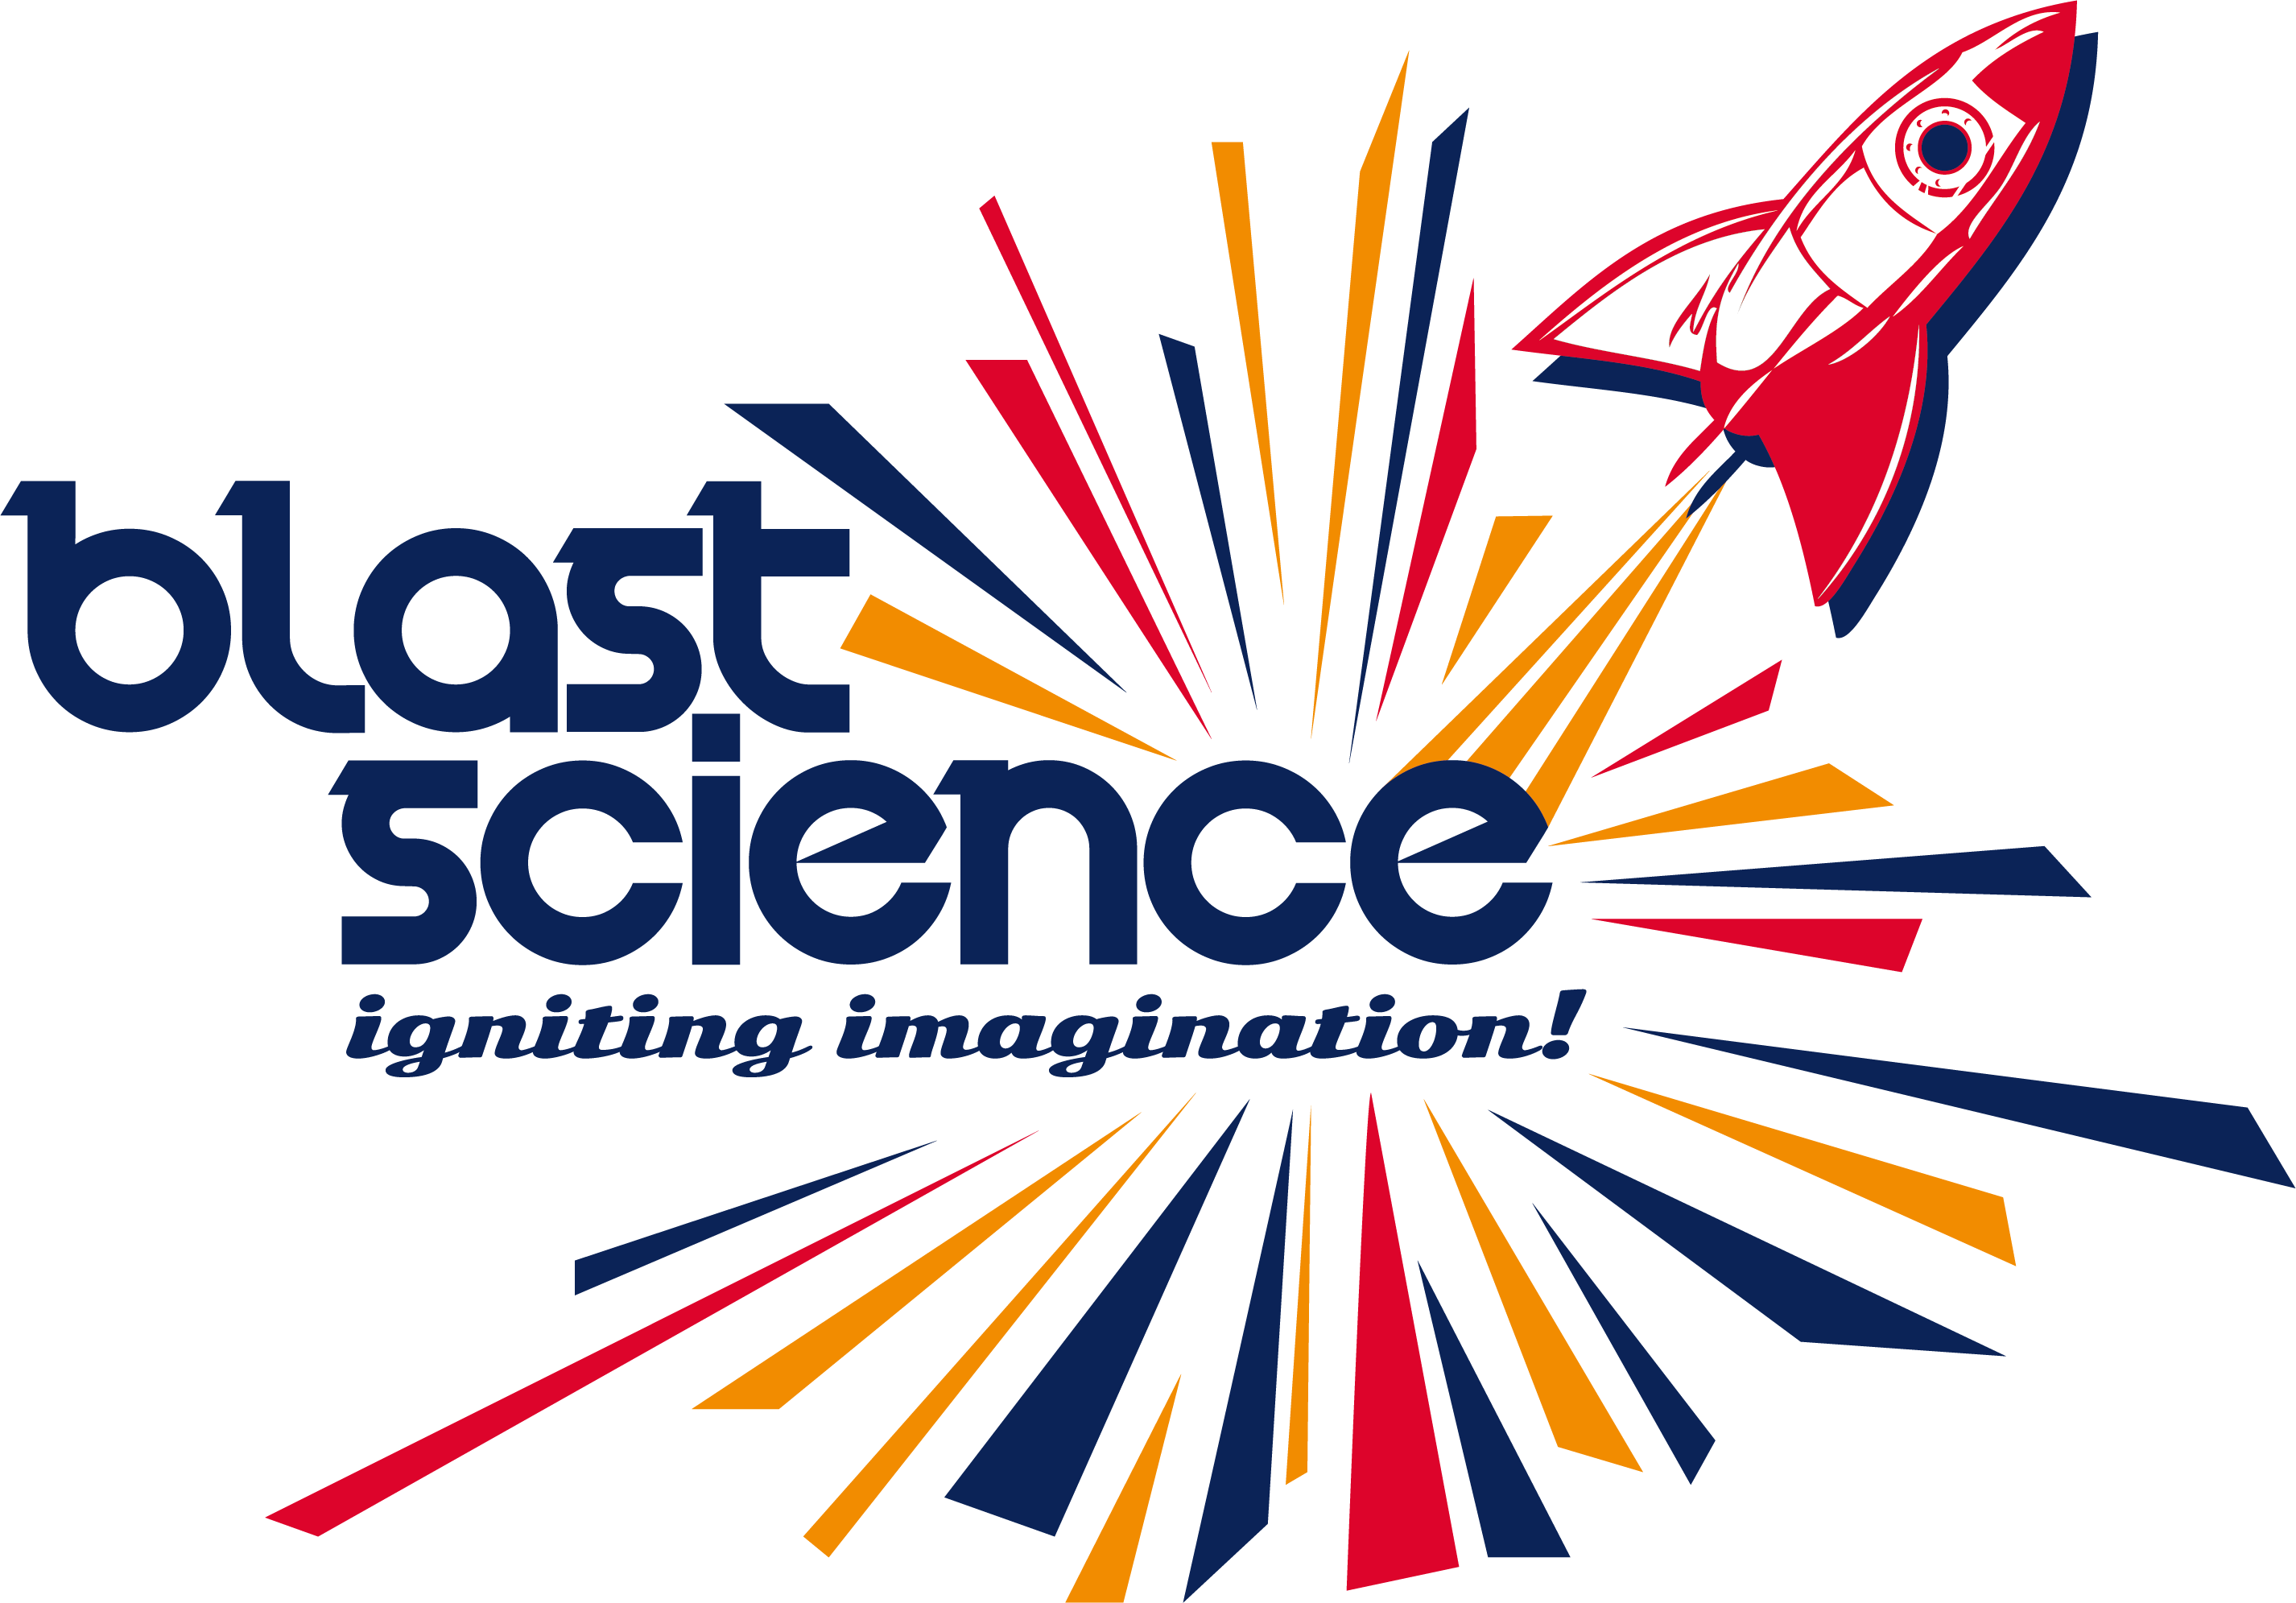 Blast Science logo